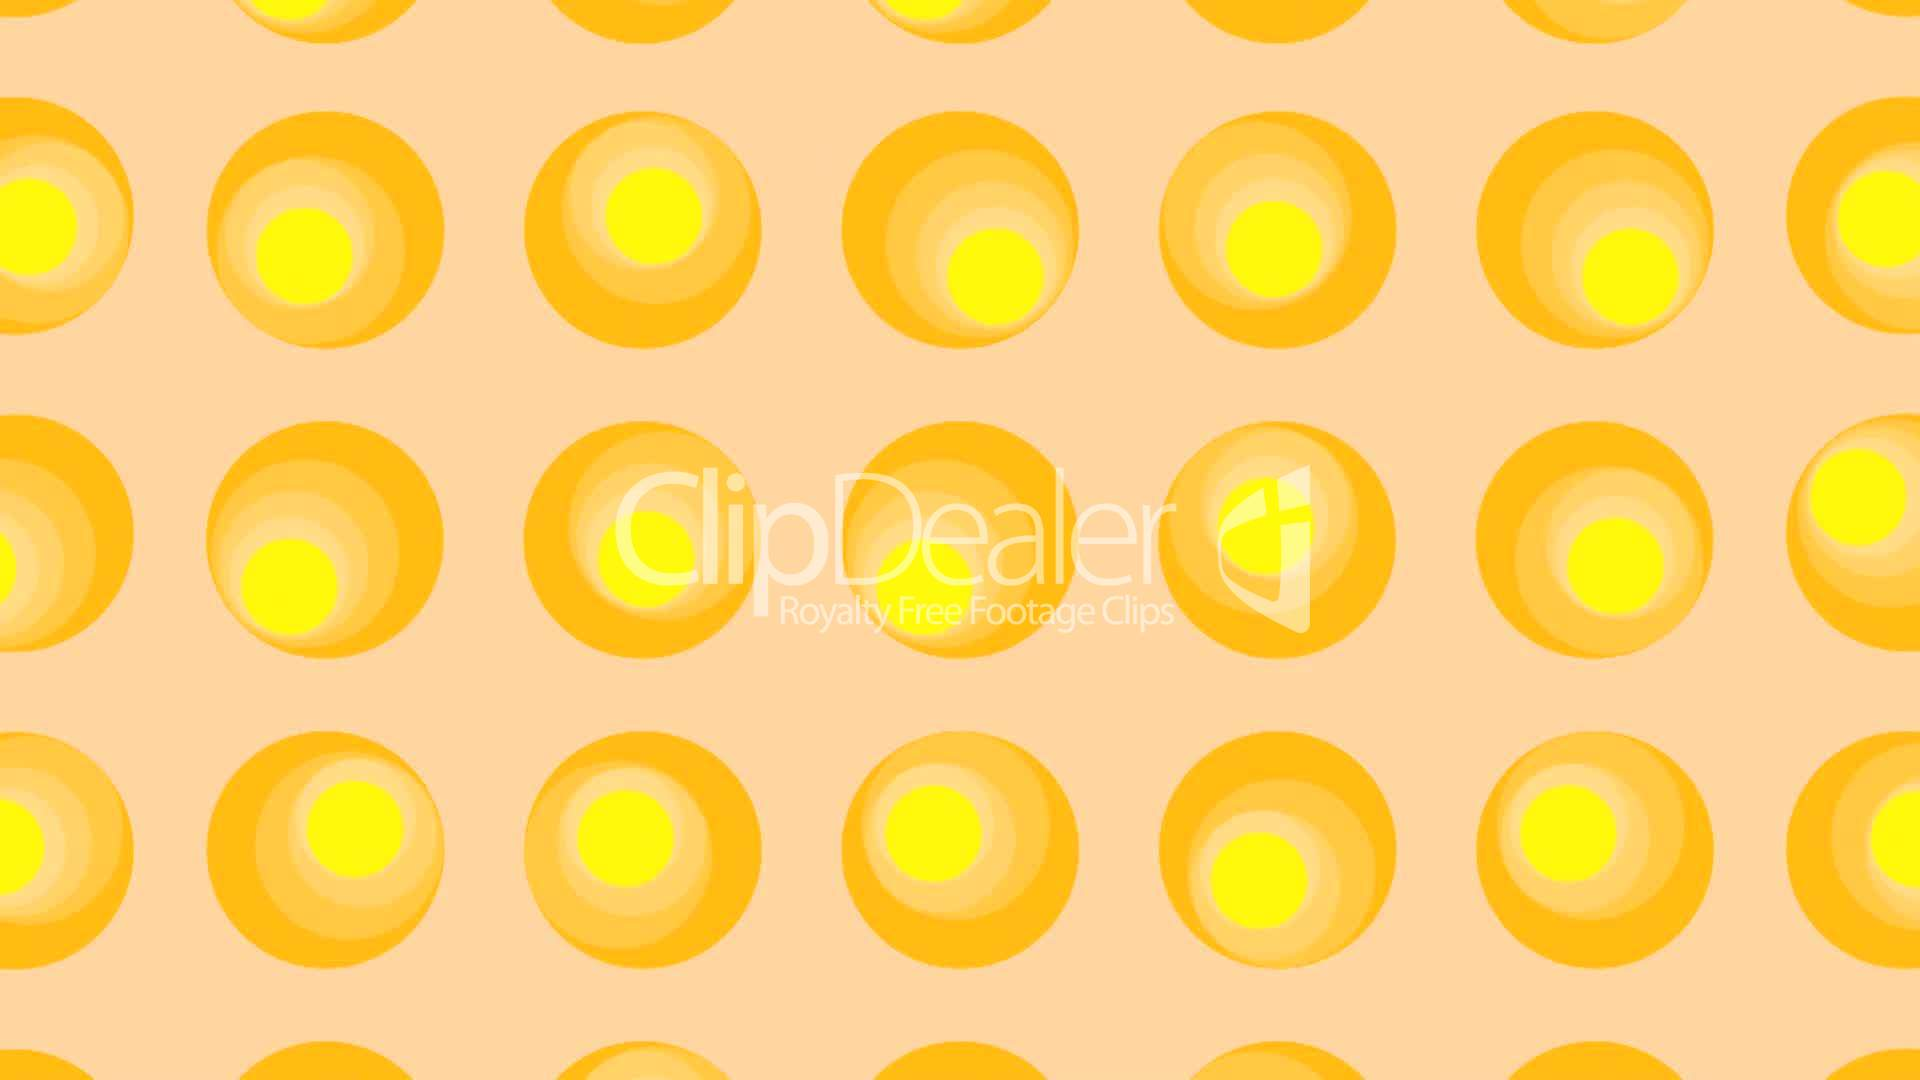 Retro tapete 4 royalty free video and stock footage for Retro tapete